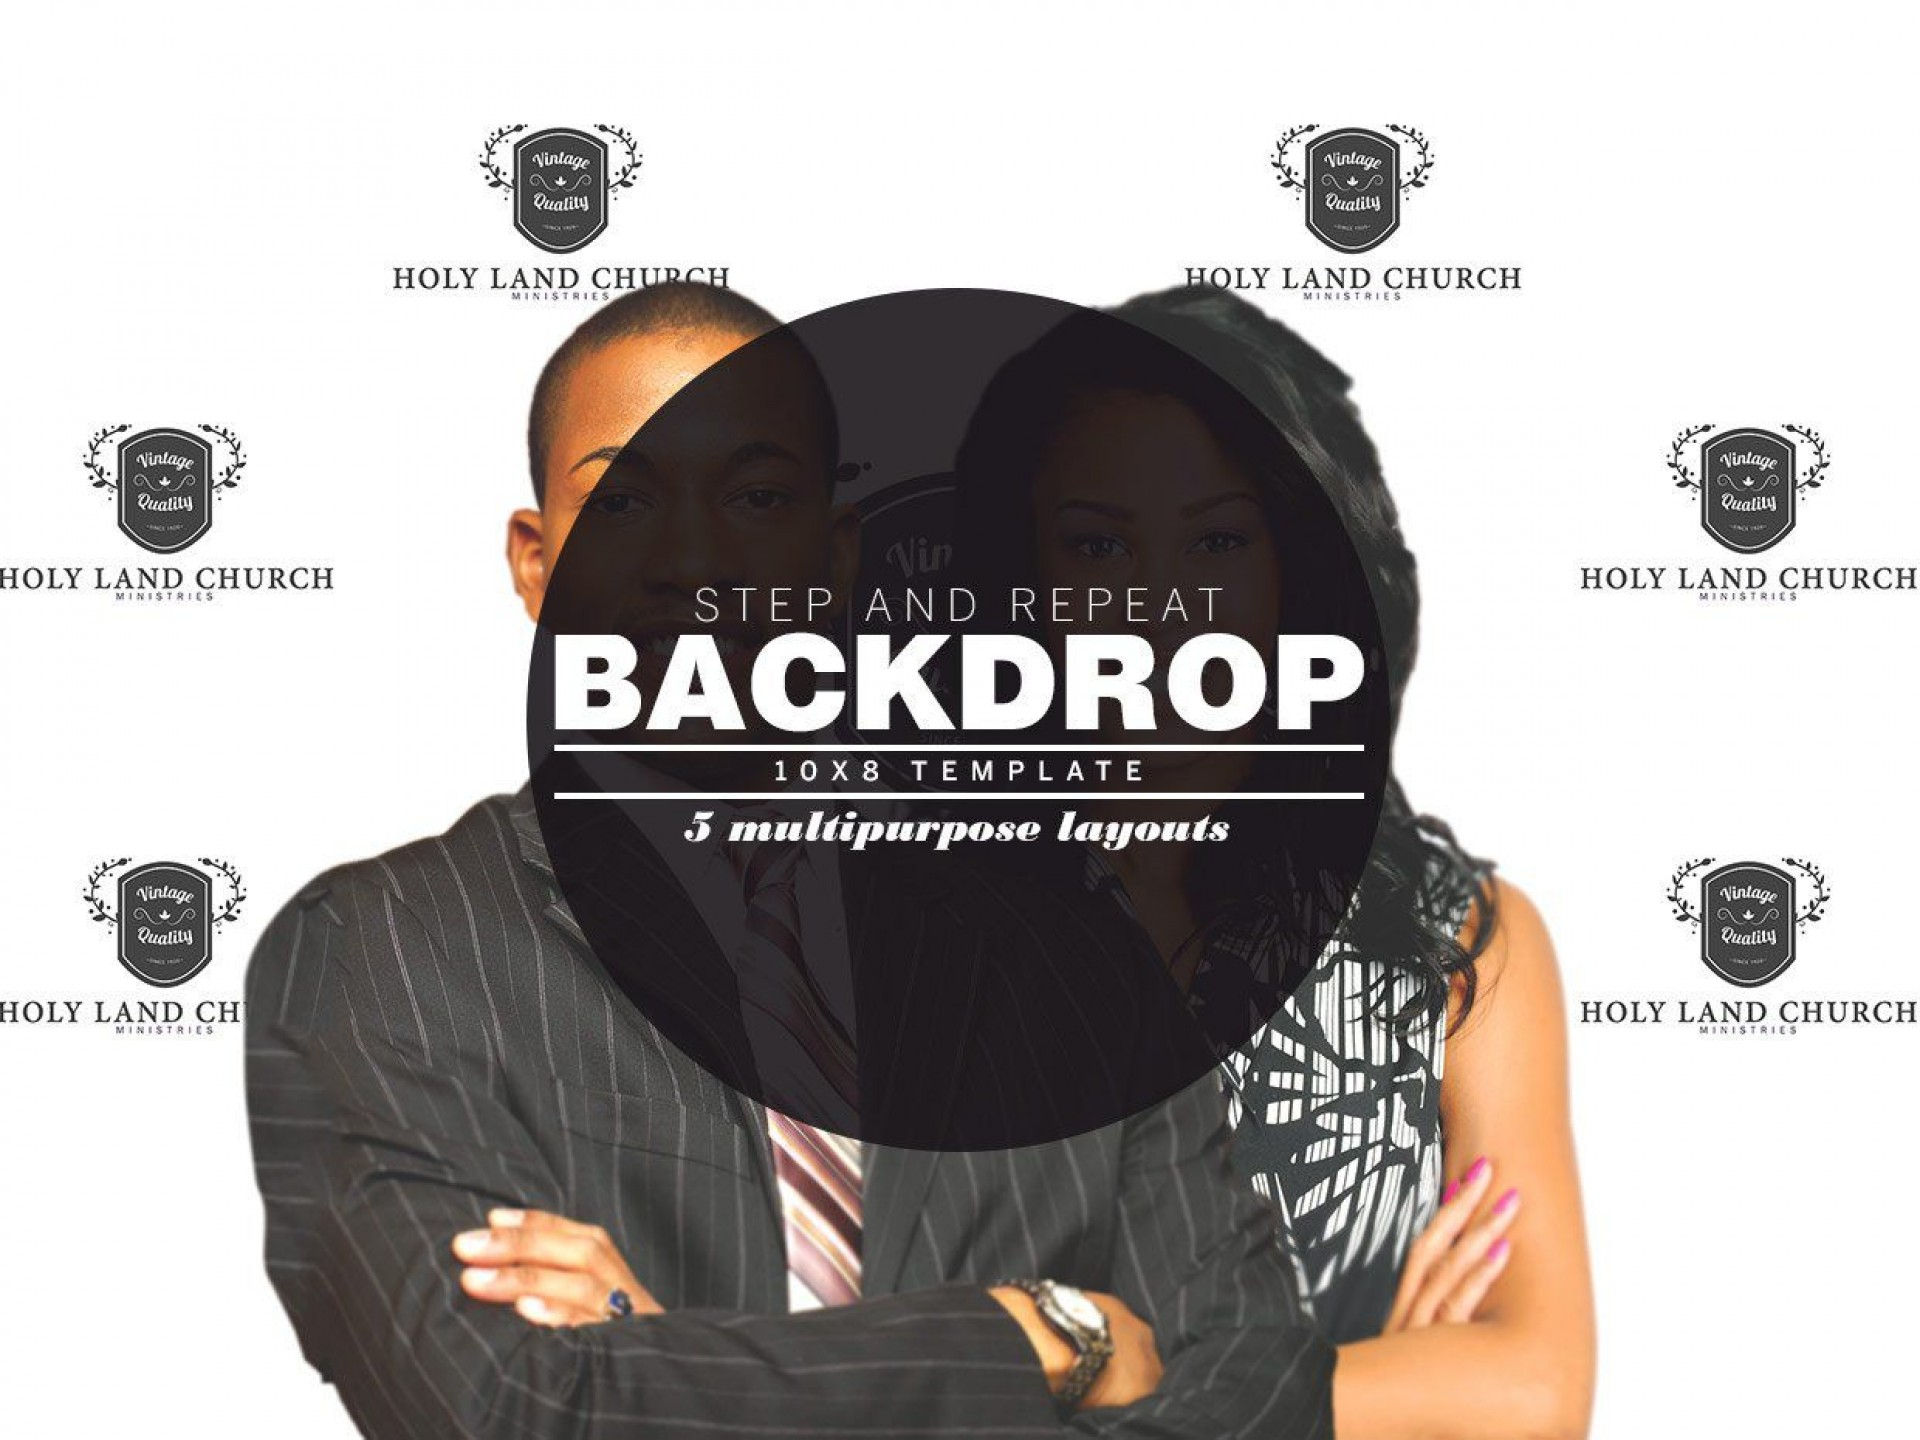 009 Archaicawful Step And Repeat Banner Template Psd Sample 1920